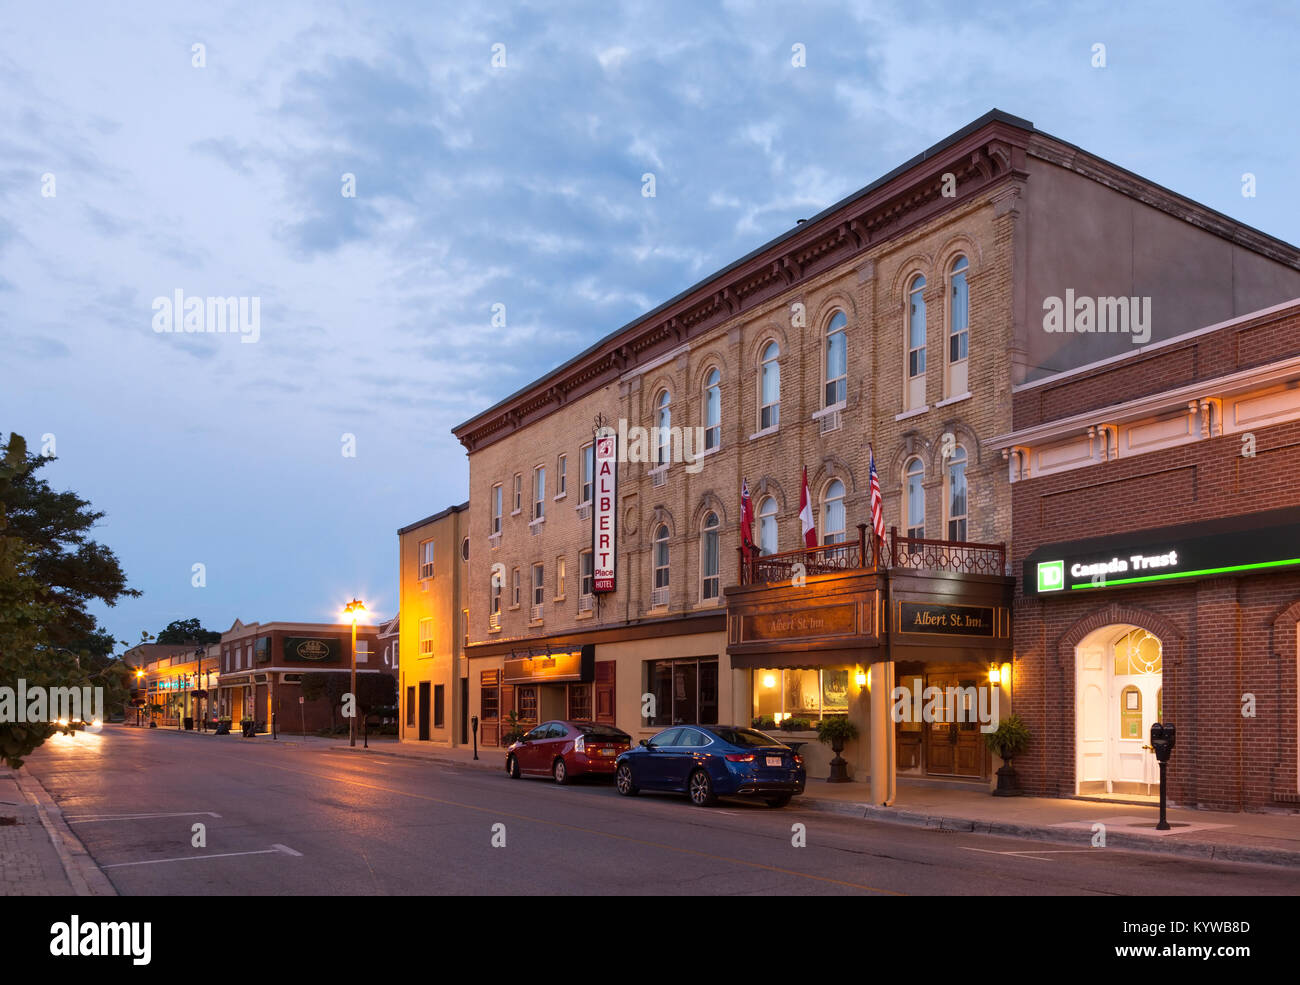 The Albert Street Inn Ltd or Albert Place Hotel seen here at dusk located in Stratford, Ontario, Canada. - Stock Image